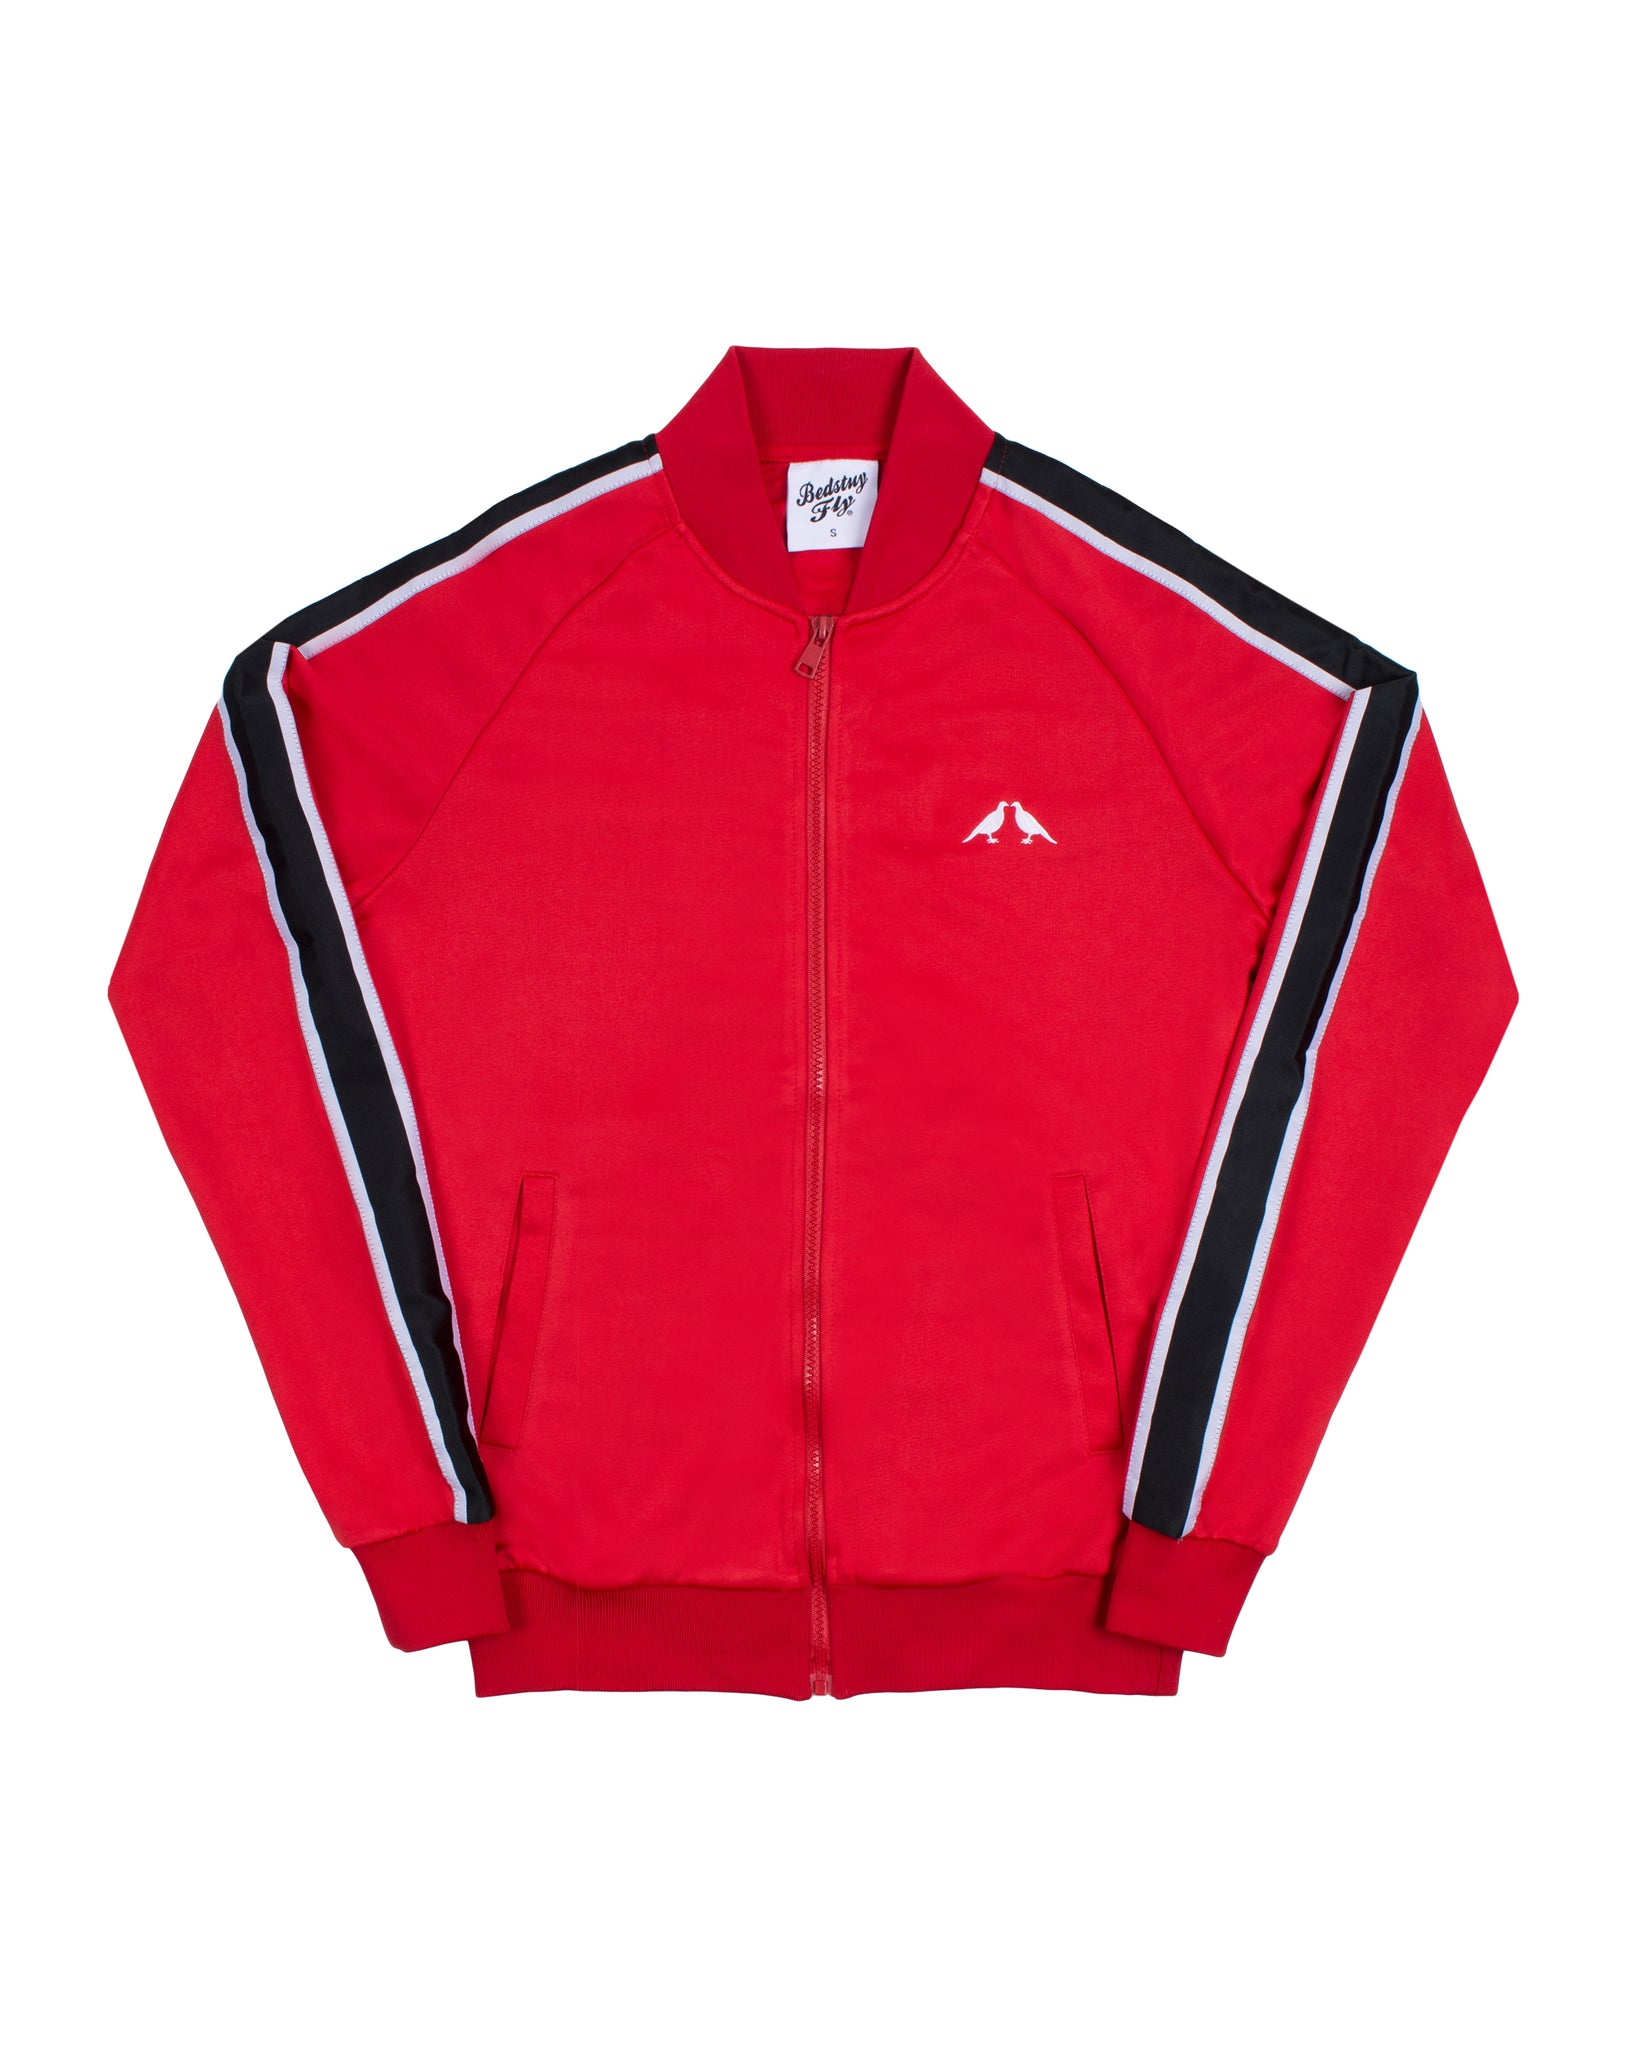 Weekend Jacket (Red)